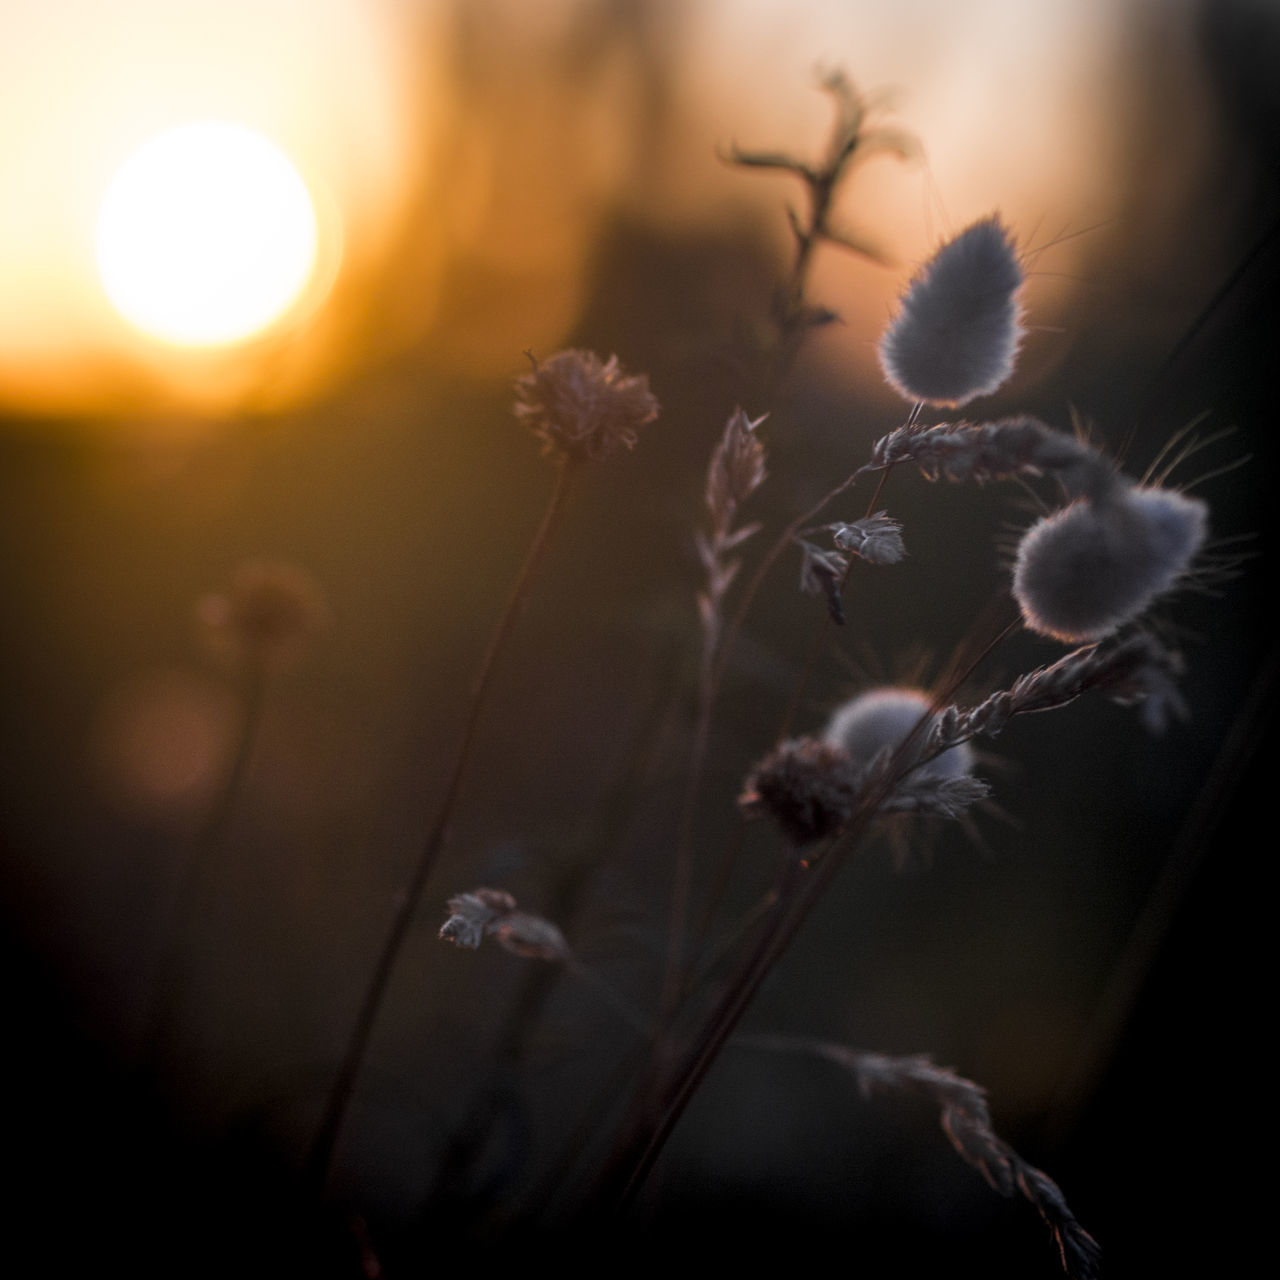 Close-up EyeEm Nature Lover Flower Freshness Growth Live For The Story Nature Nature Photography Nature_collection No People Plant Plant Spring Sunset Sunset Silhouettes Sunset_collection